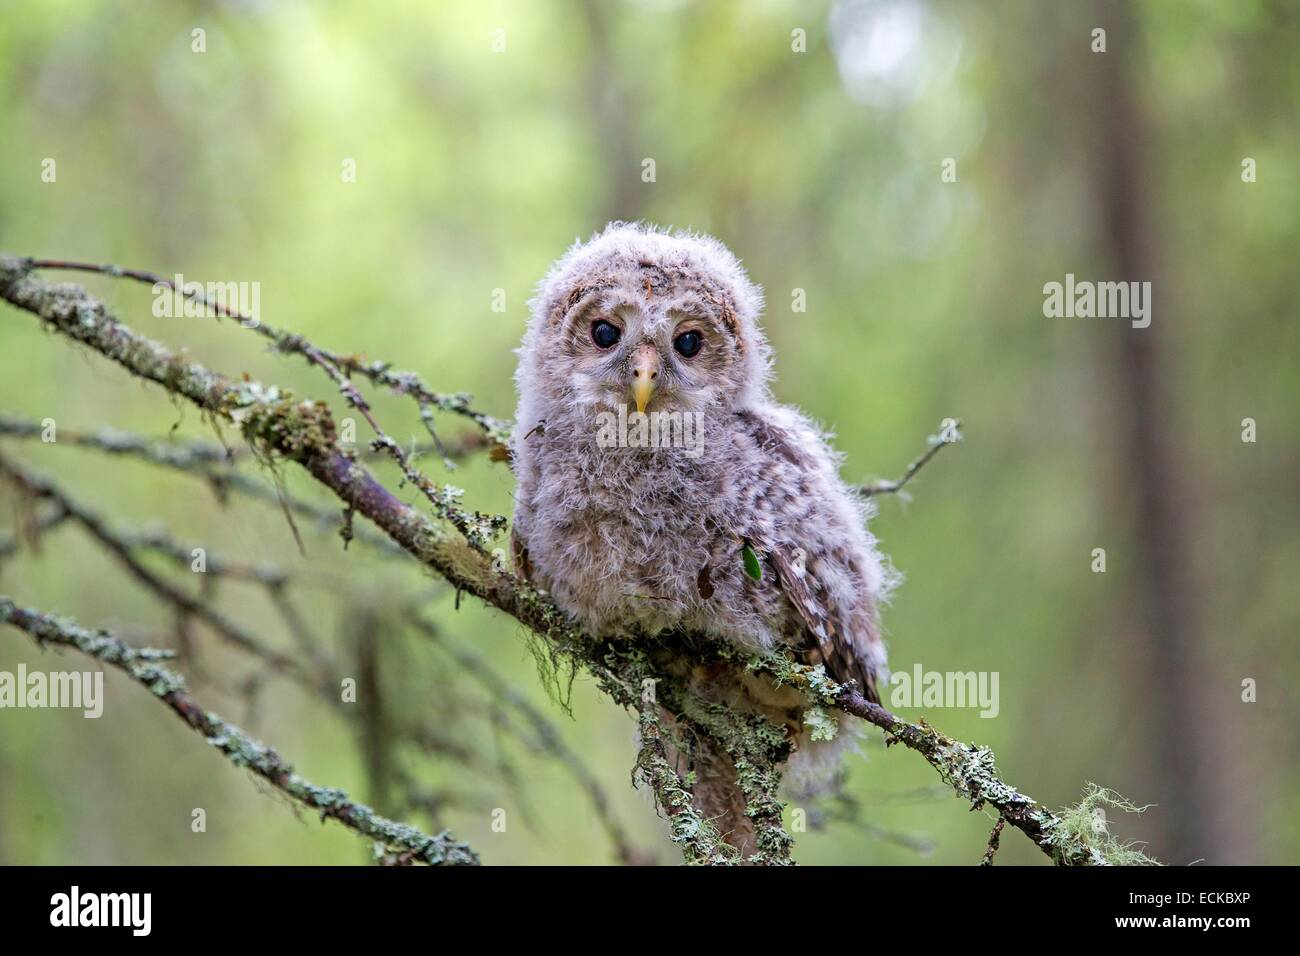 Finland, Kuhmo area, Kajaani, Ural owl (Strix uralensis, young just after he left the nest, perched on a branch Stock Photo